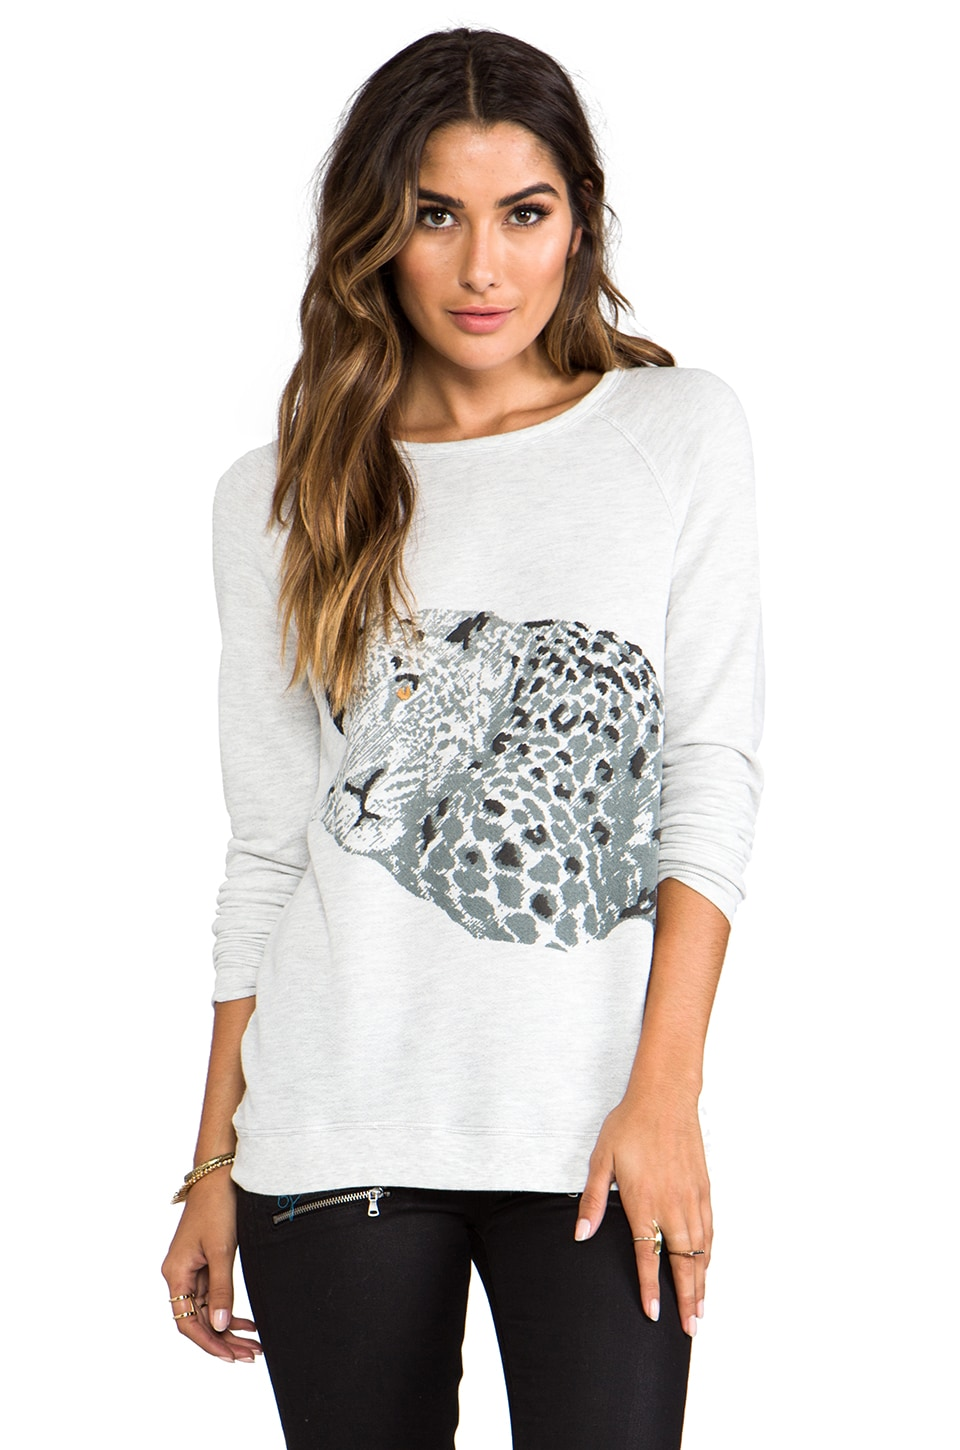 Soft Joie Annora Leopard Sweatshirt in Heather Grey